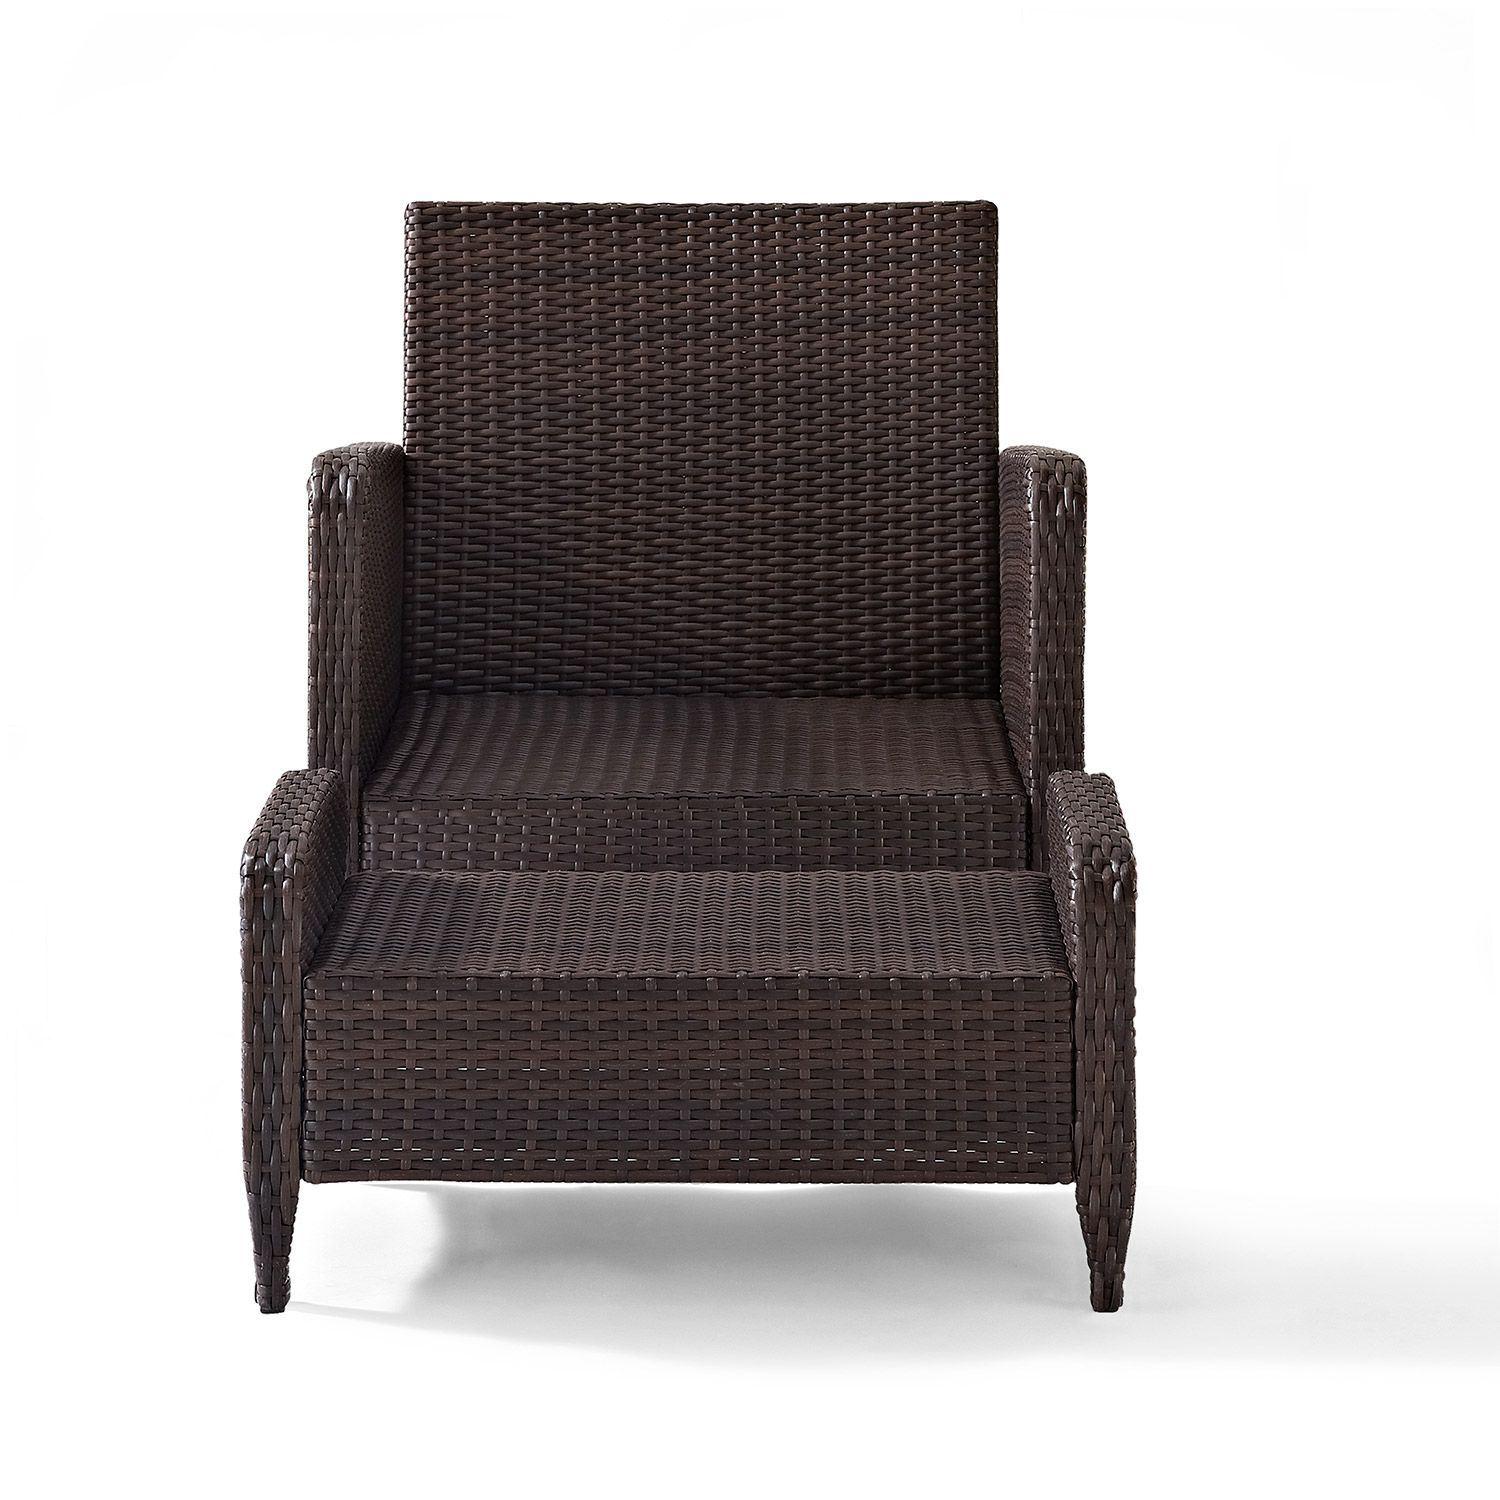 Picture of Kiawah 2-Piece Outdoor Seating Set, Brown *D